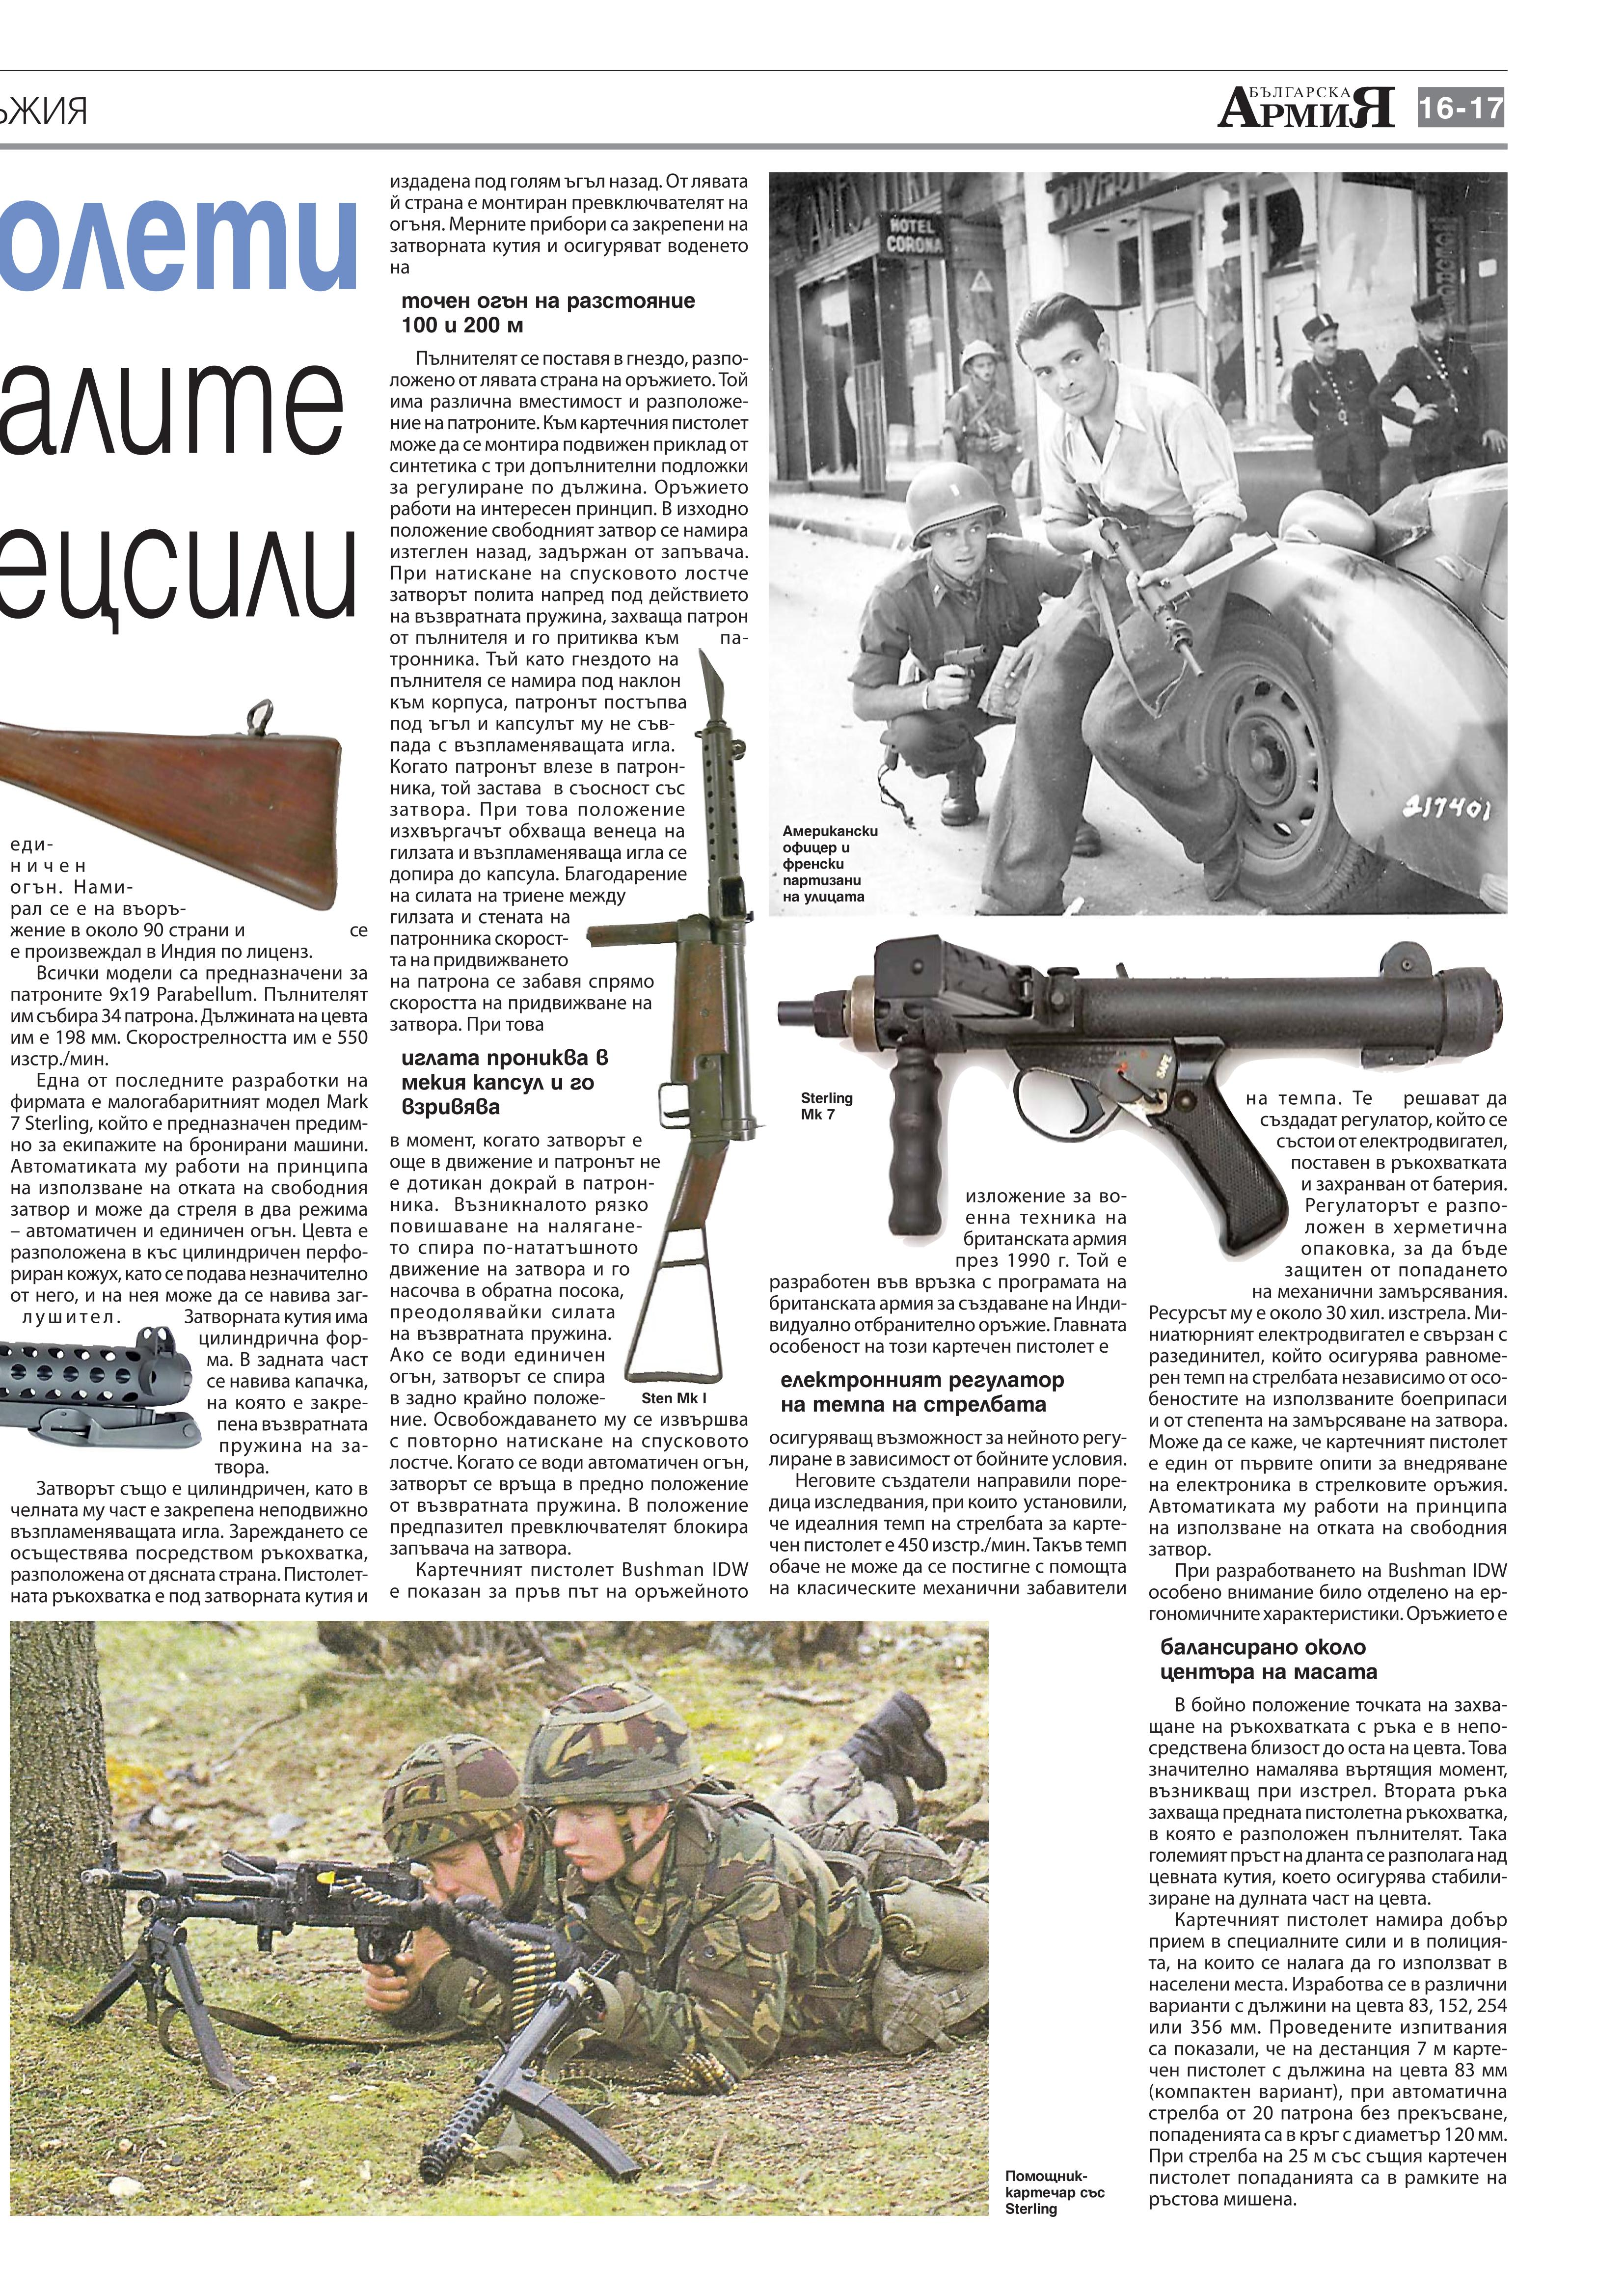 https://armymedia.bg/wp-content/uploads/2015/06/17.page1_-116.jpg